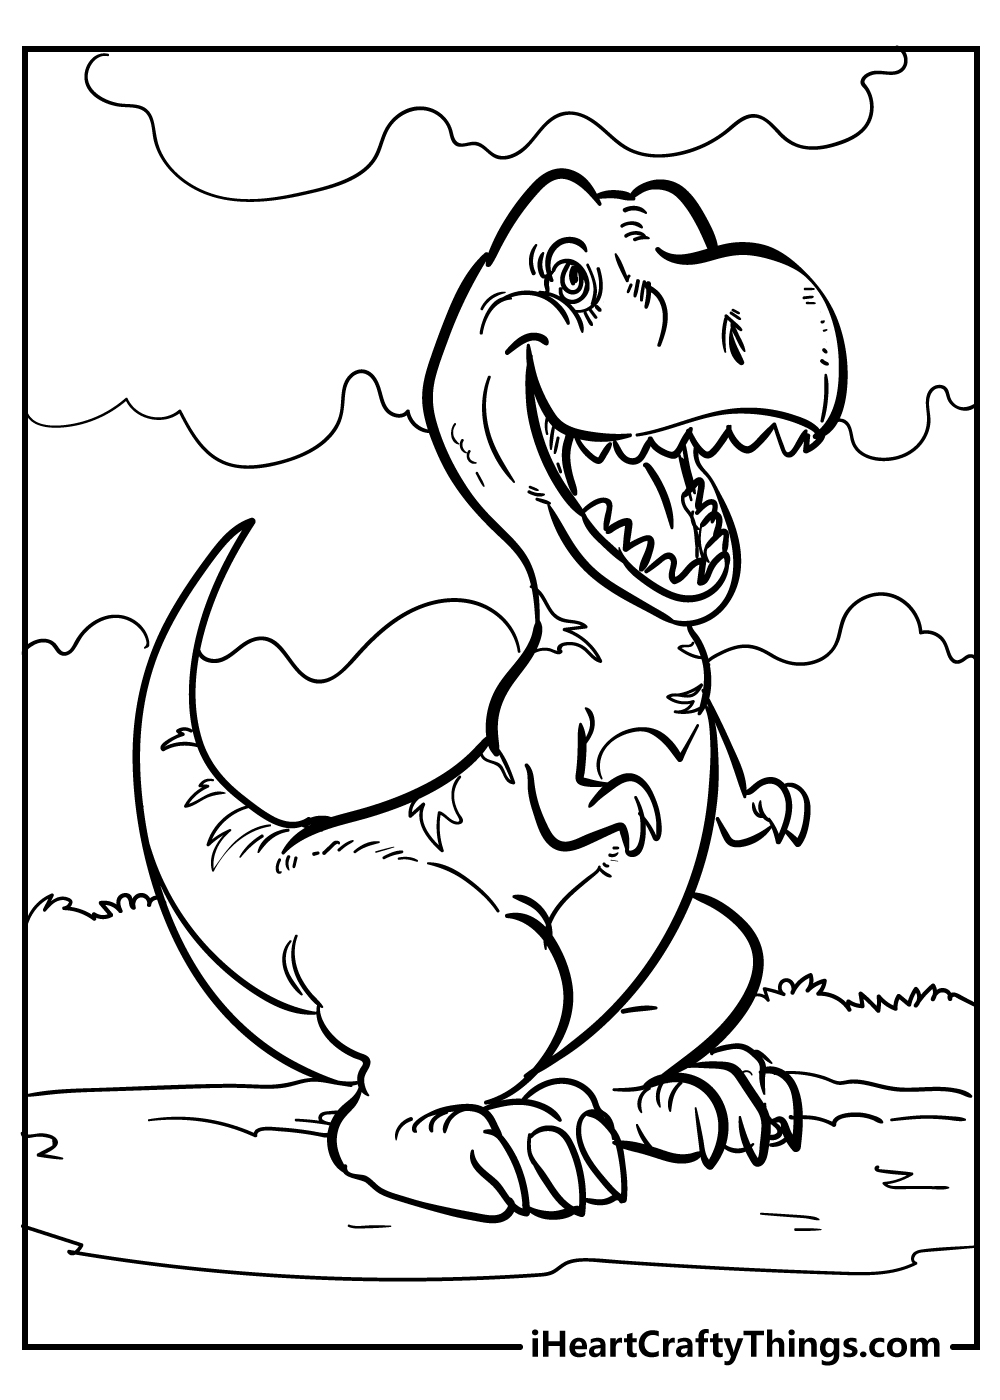 Jurassic Park T-Rex coloring page for preschoolers